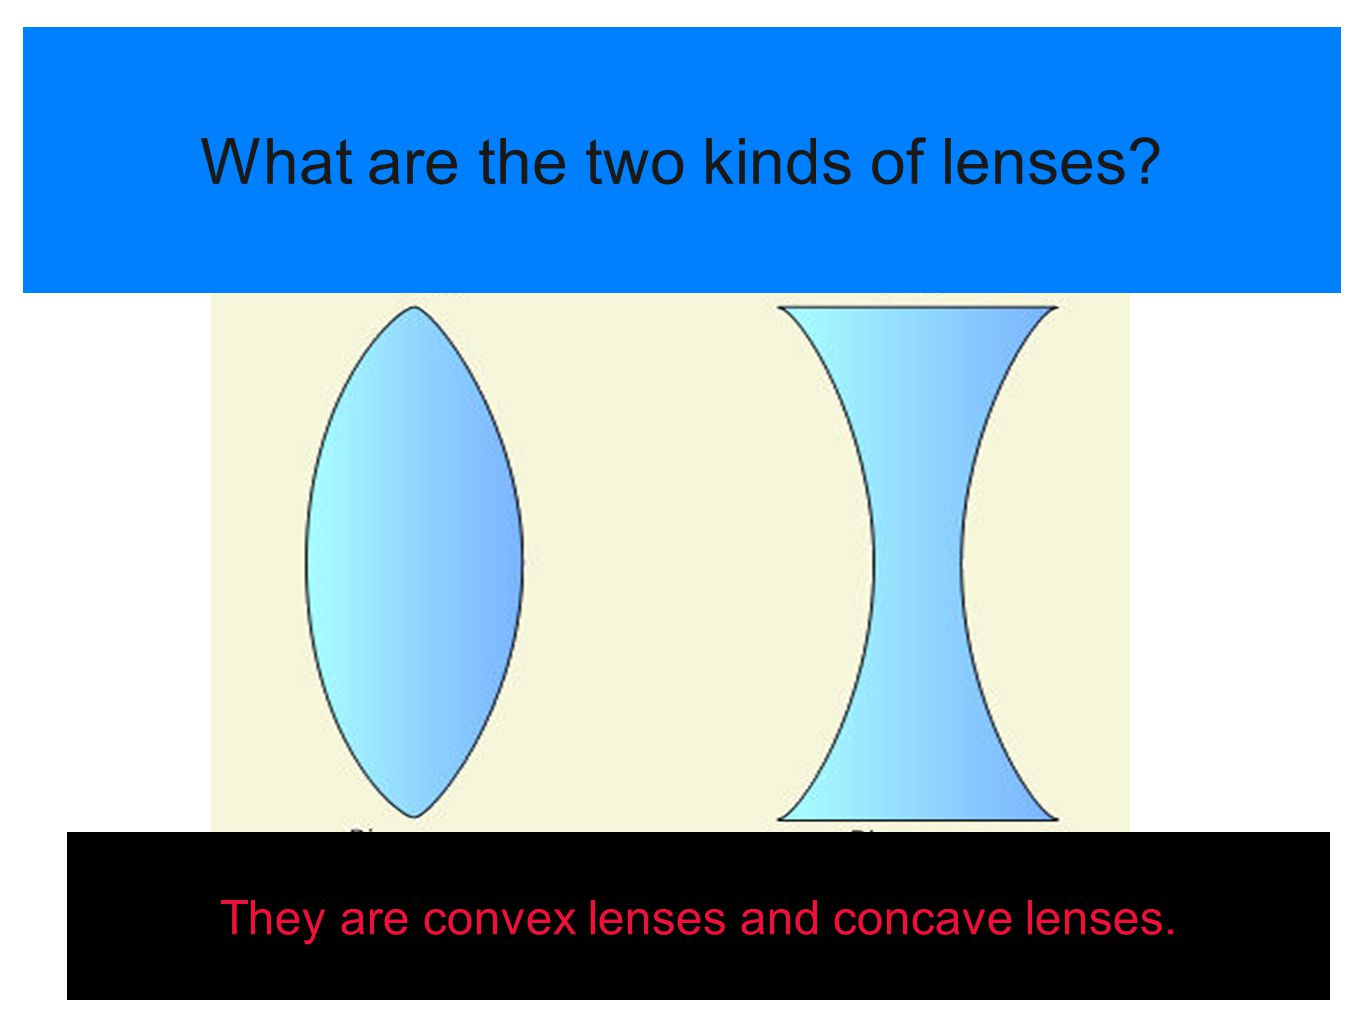 What are the two kinds of lenses? They are convex lenses and concave lenses.